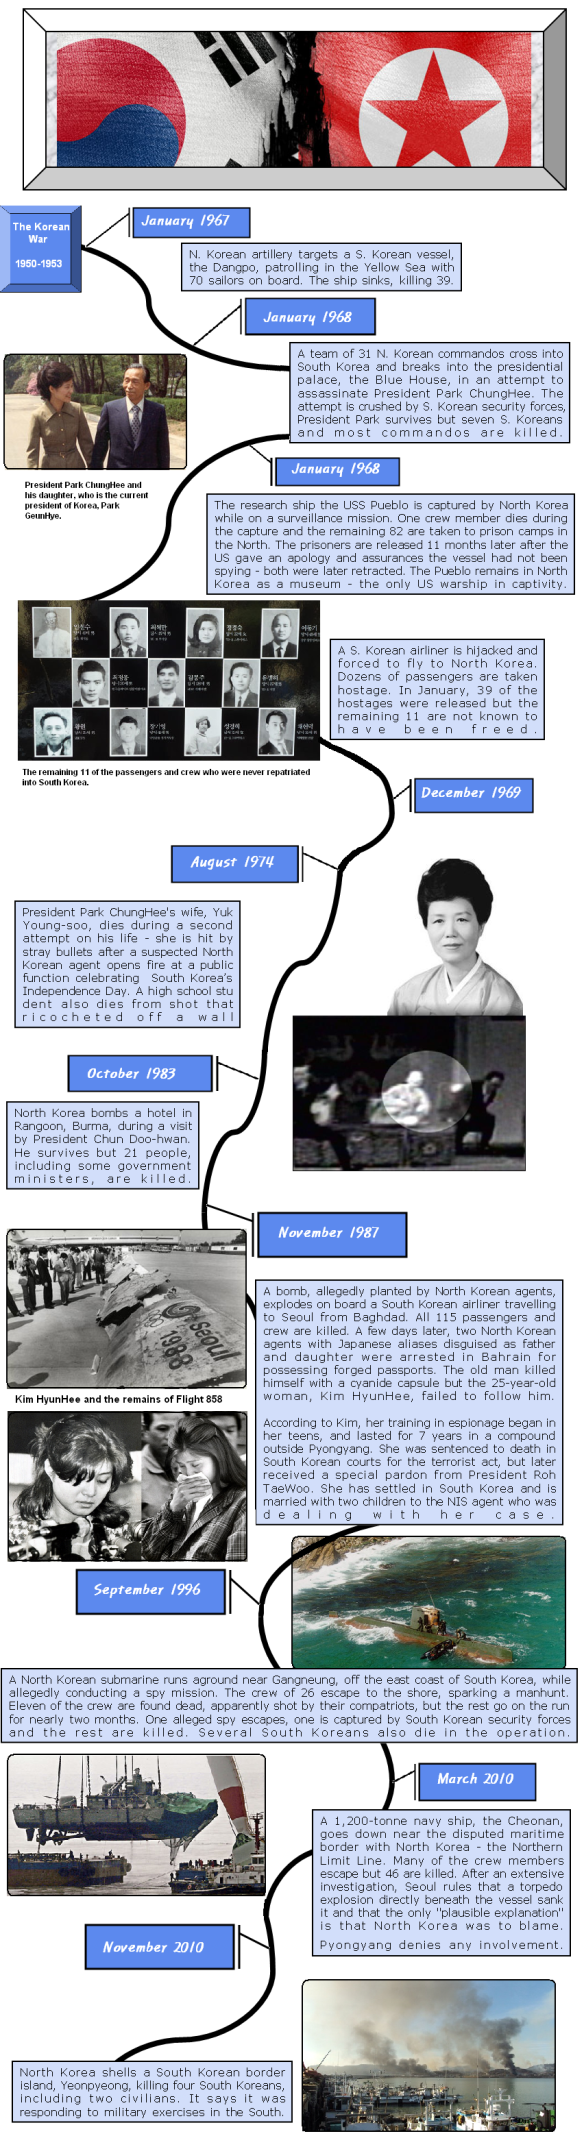 History of North Korean Attacks on South Korea